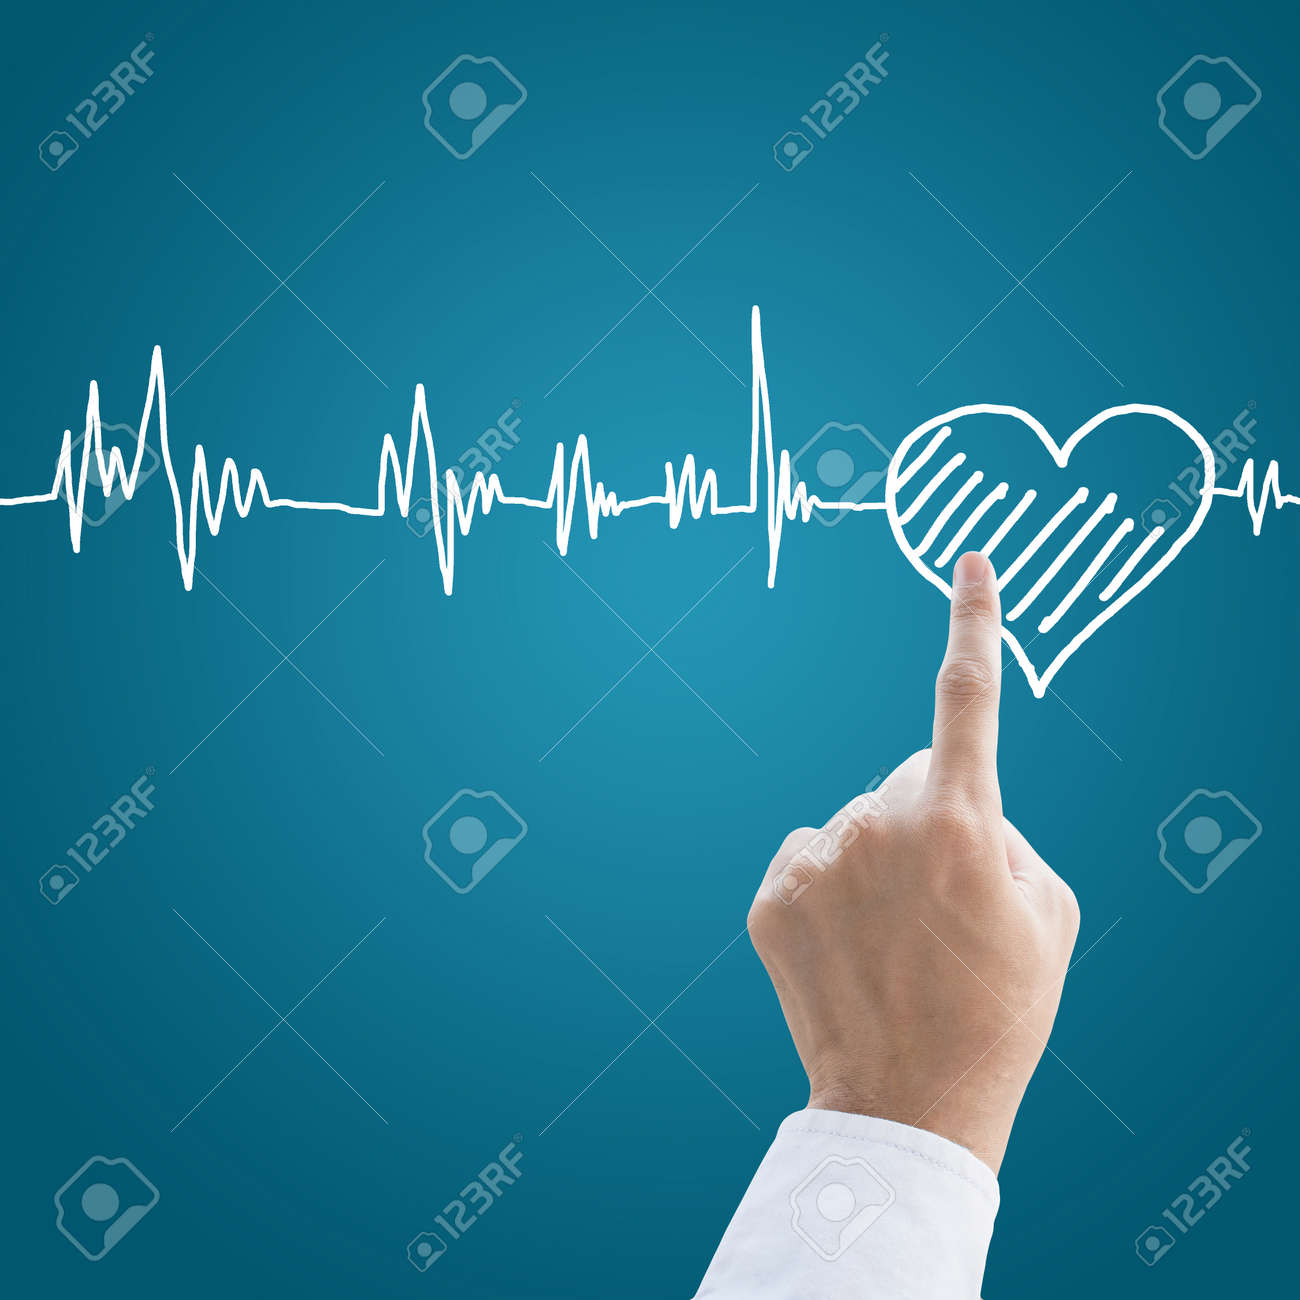 Hand medical with heart pulse Stock Photo - 26764807